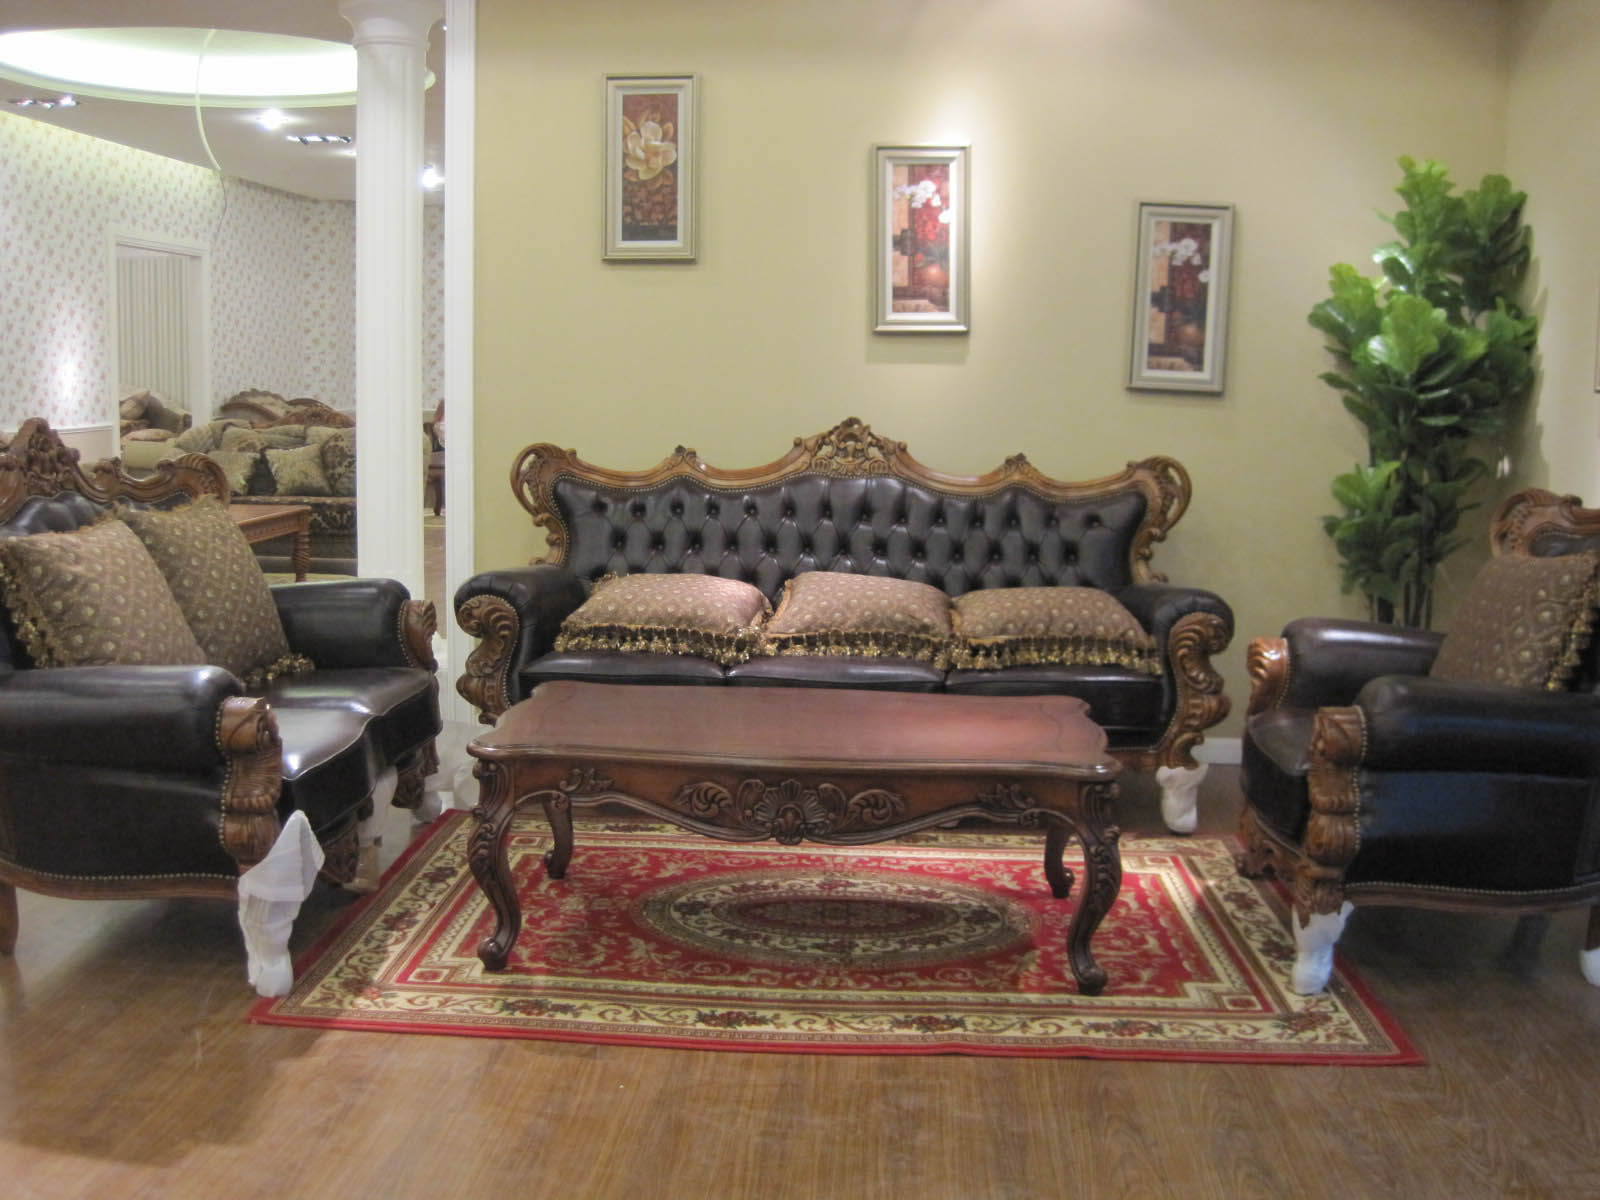 sensational living room sofa sets gallery-Fantastic Living Room sofa Sets Ideas